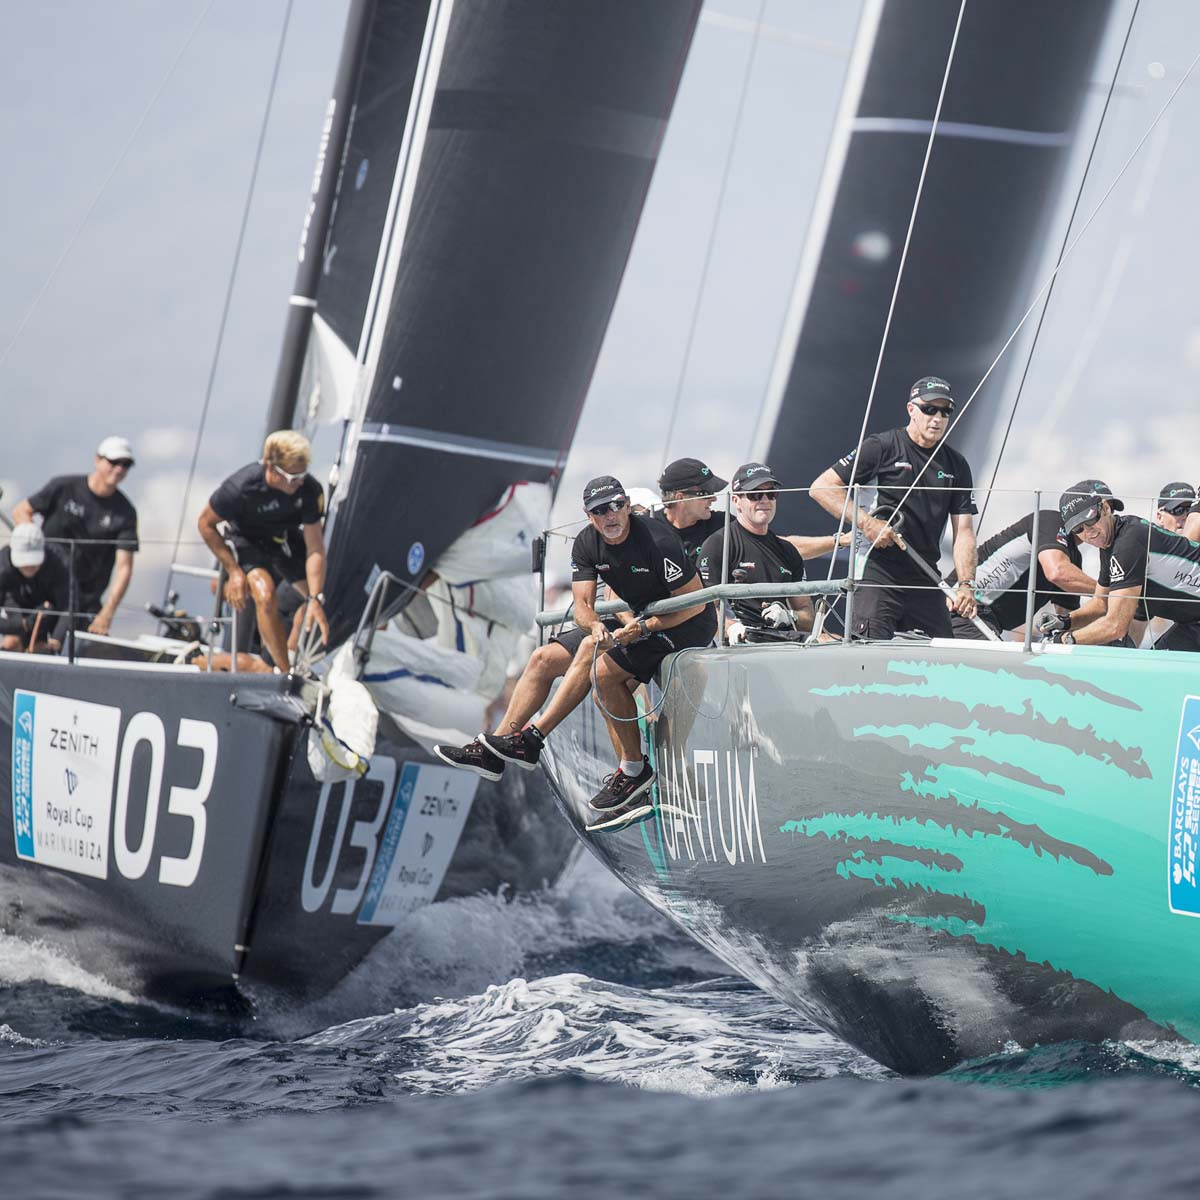 La Cote des Montres : Photo - Palpitant week-end de finale de la Zenith Royal Cup Marina Ibiza